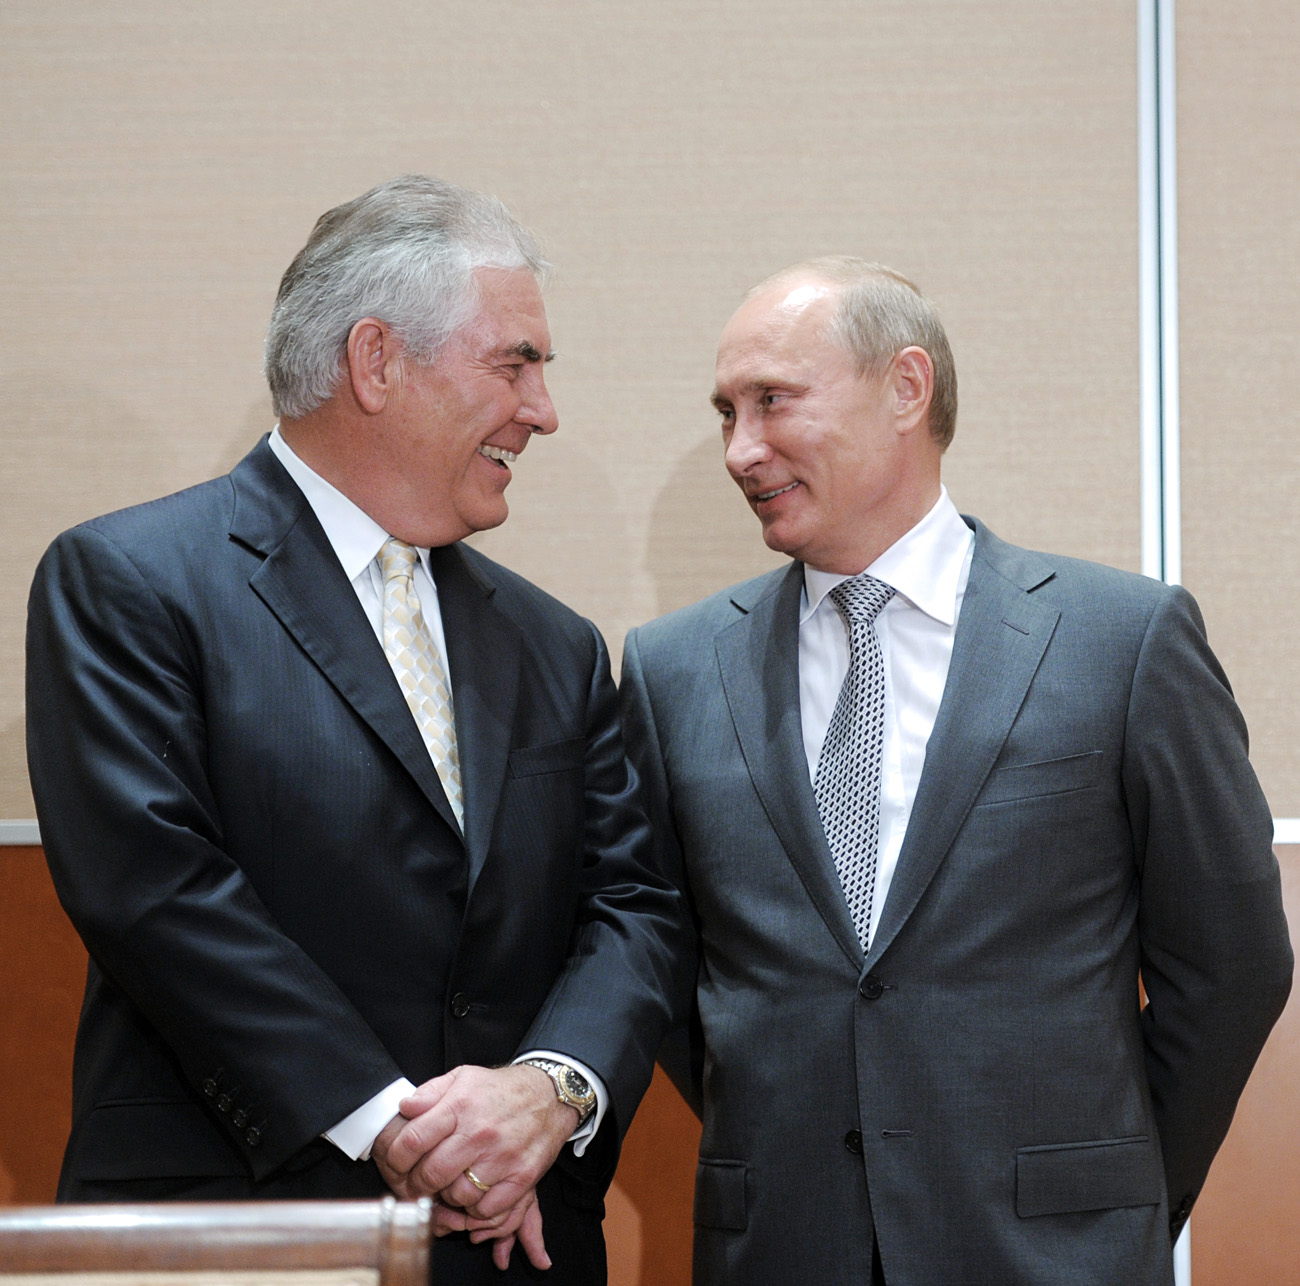 Aug. 30, 2011. From right: Russia's Prime Minister Vladimir Putin and ExxonMobil President and Chief Executive Officer Rex Tillerson attended the ceremony of signing of the Rosneft-ExxonMobil strategic partnership agreement.